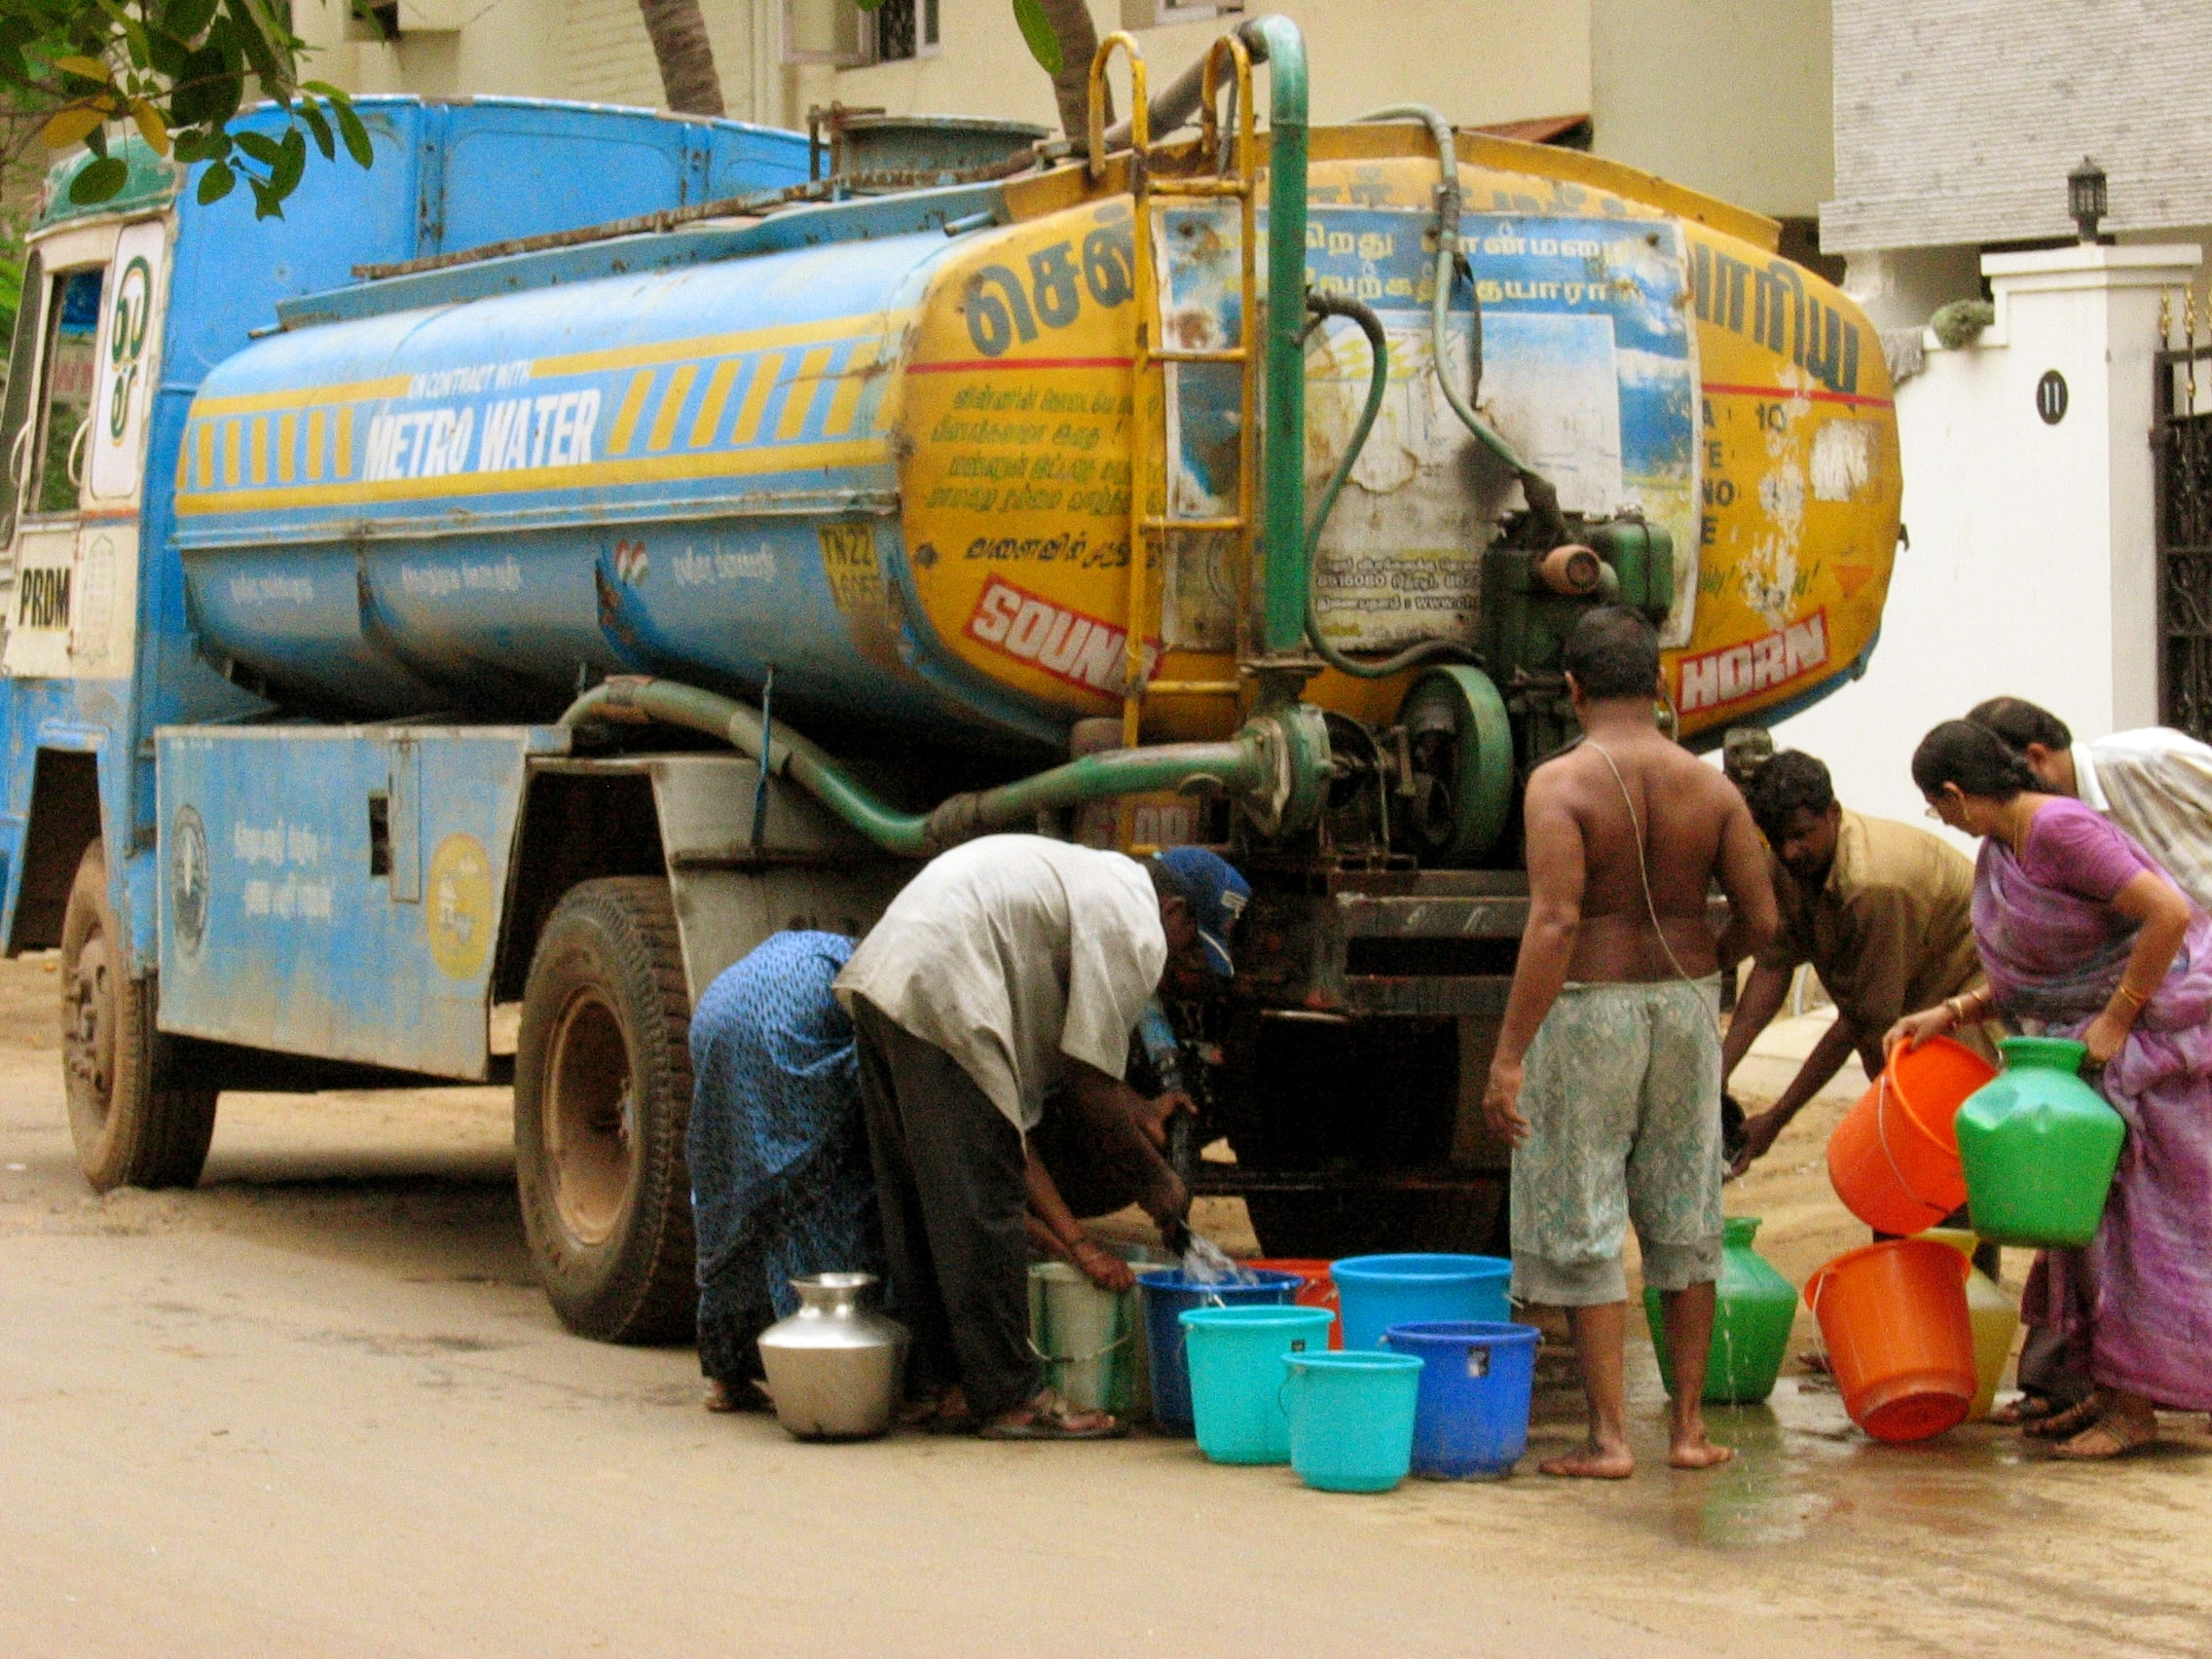 Chennai faces acute water scarcity tankers make hay